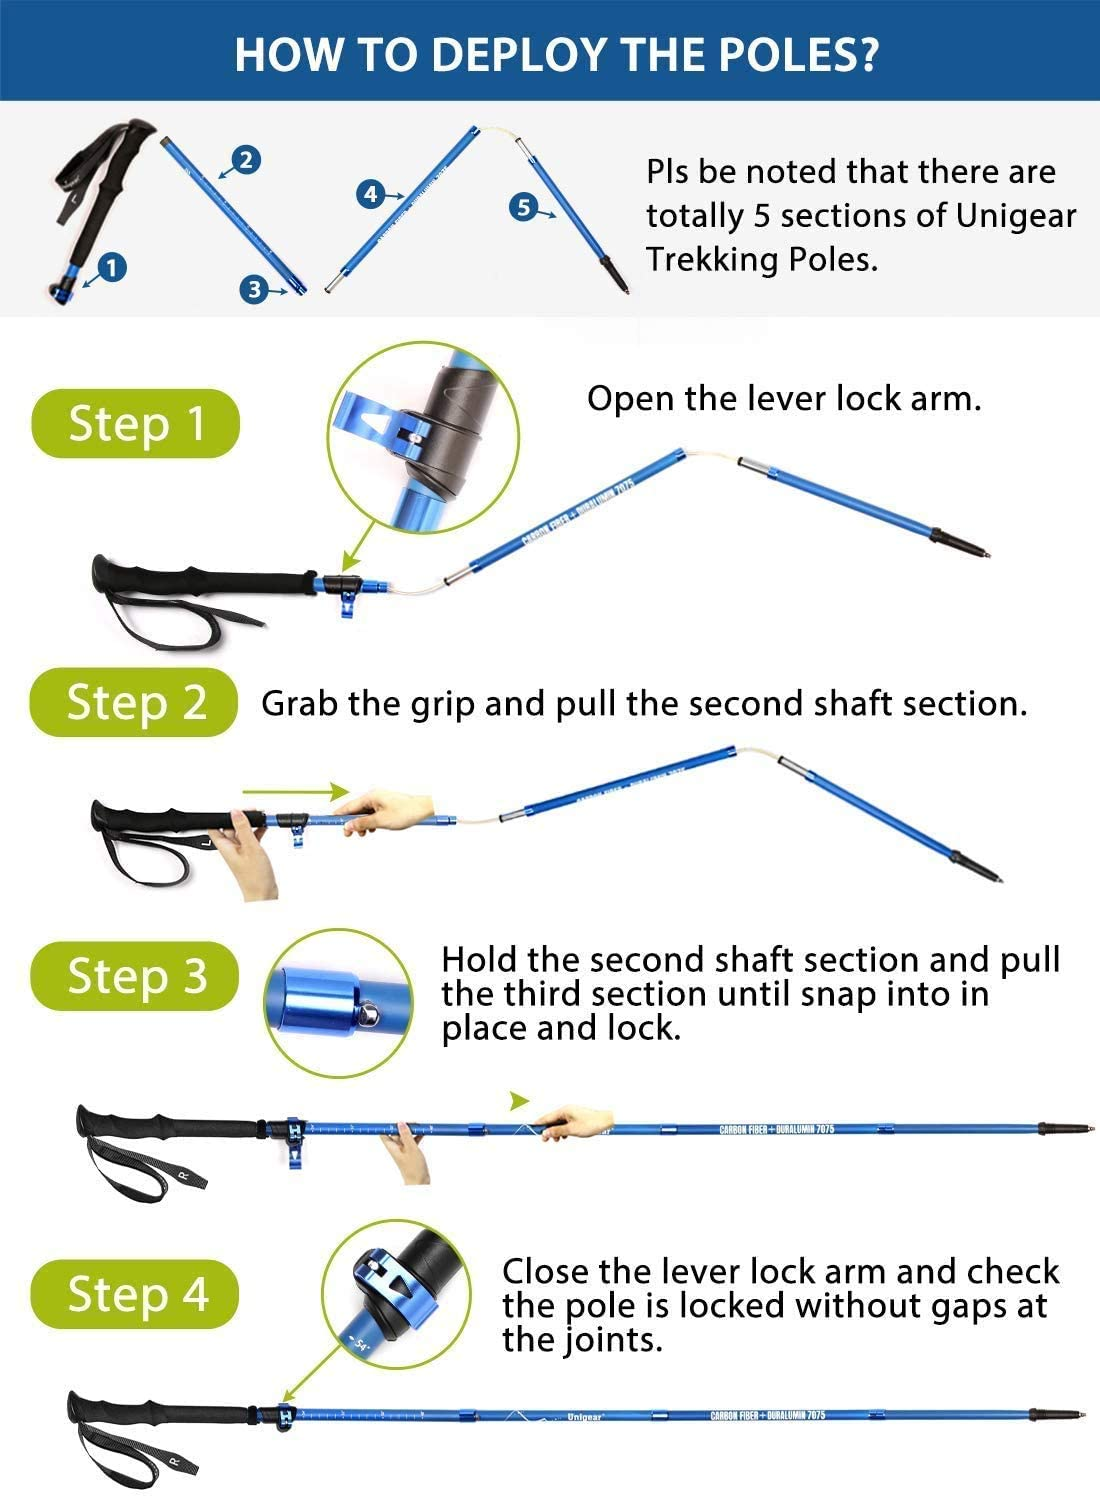 Backpacking Hiking Camping Hiking Sticks with Quick Lock System 7075 Aluminum Alloy Ultralight 115-135cm Collapsible For Walking Trekking Unigear Trekking Poles